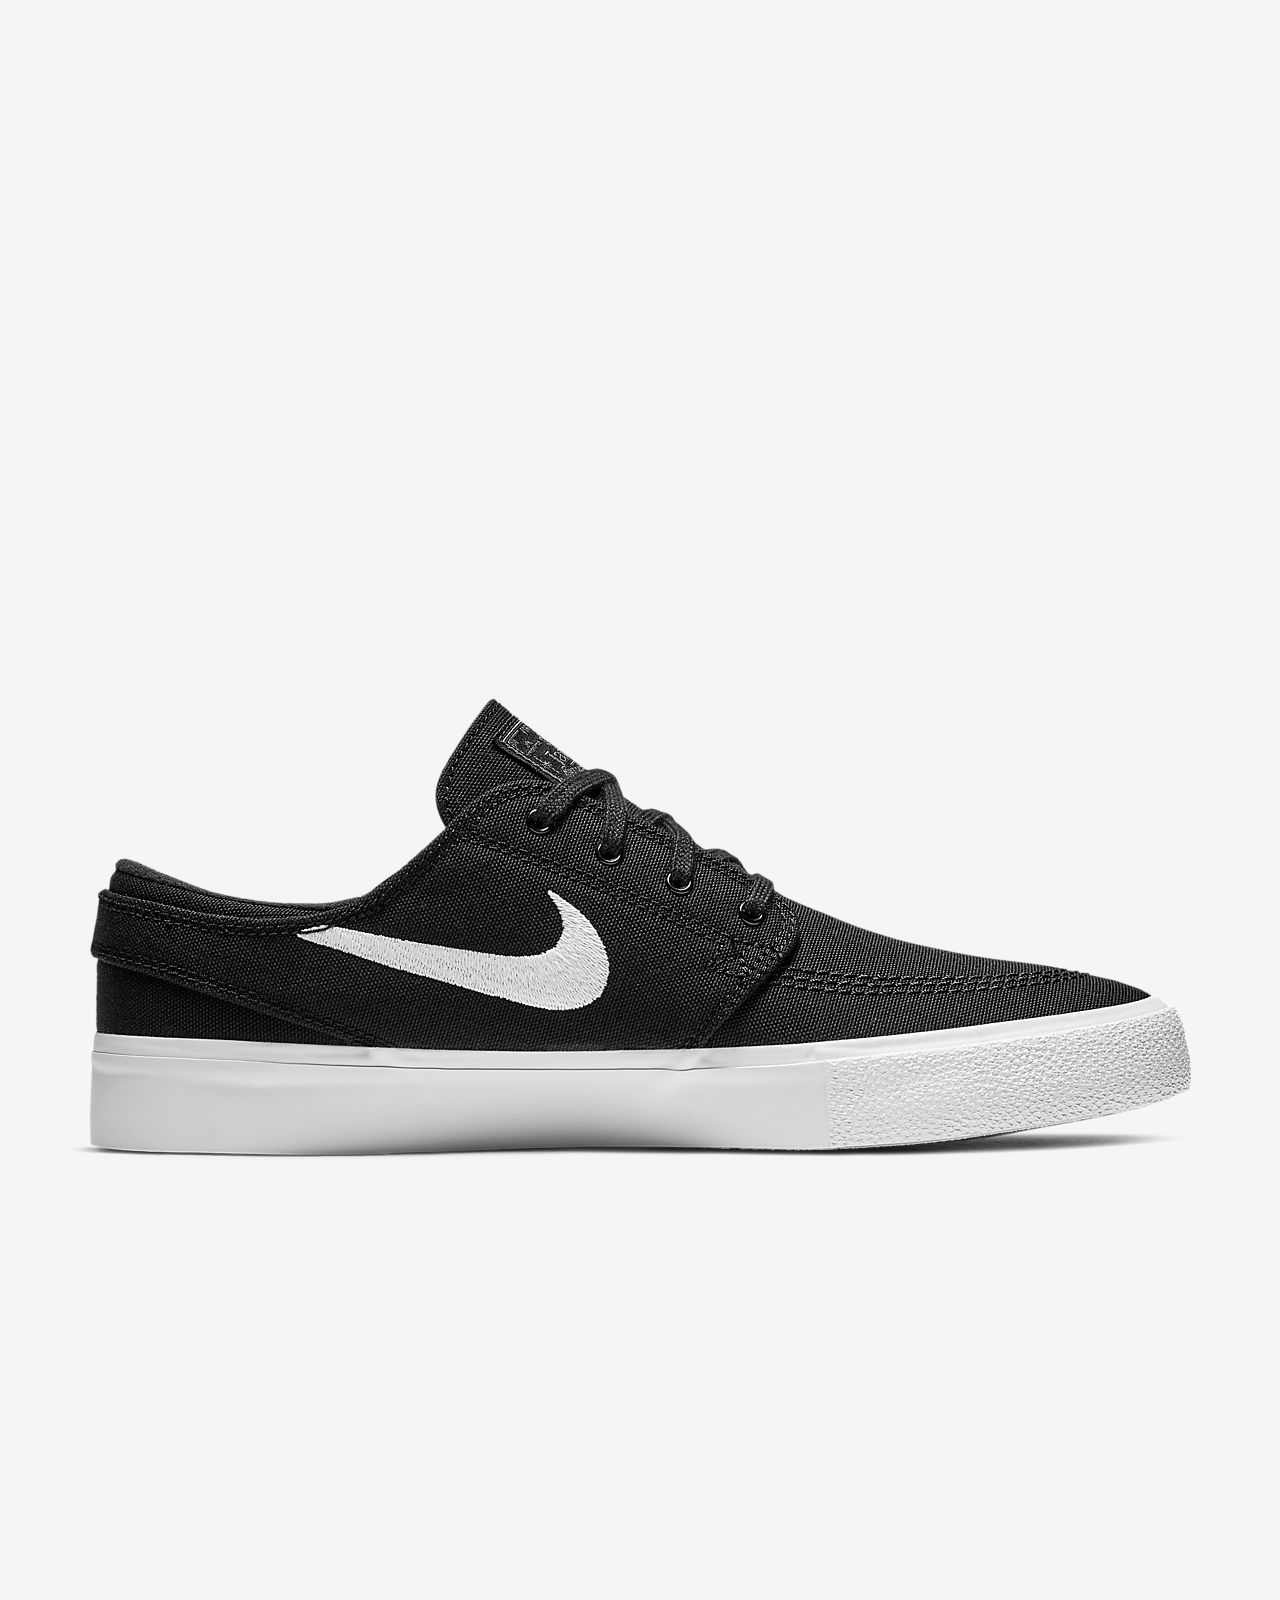 big sale c6c02 69e29 ... Skateboardsko Nike SB Zoom Janoski Canvas RM